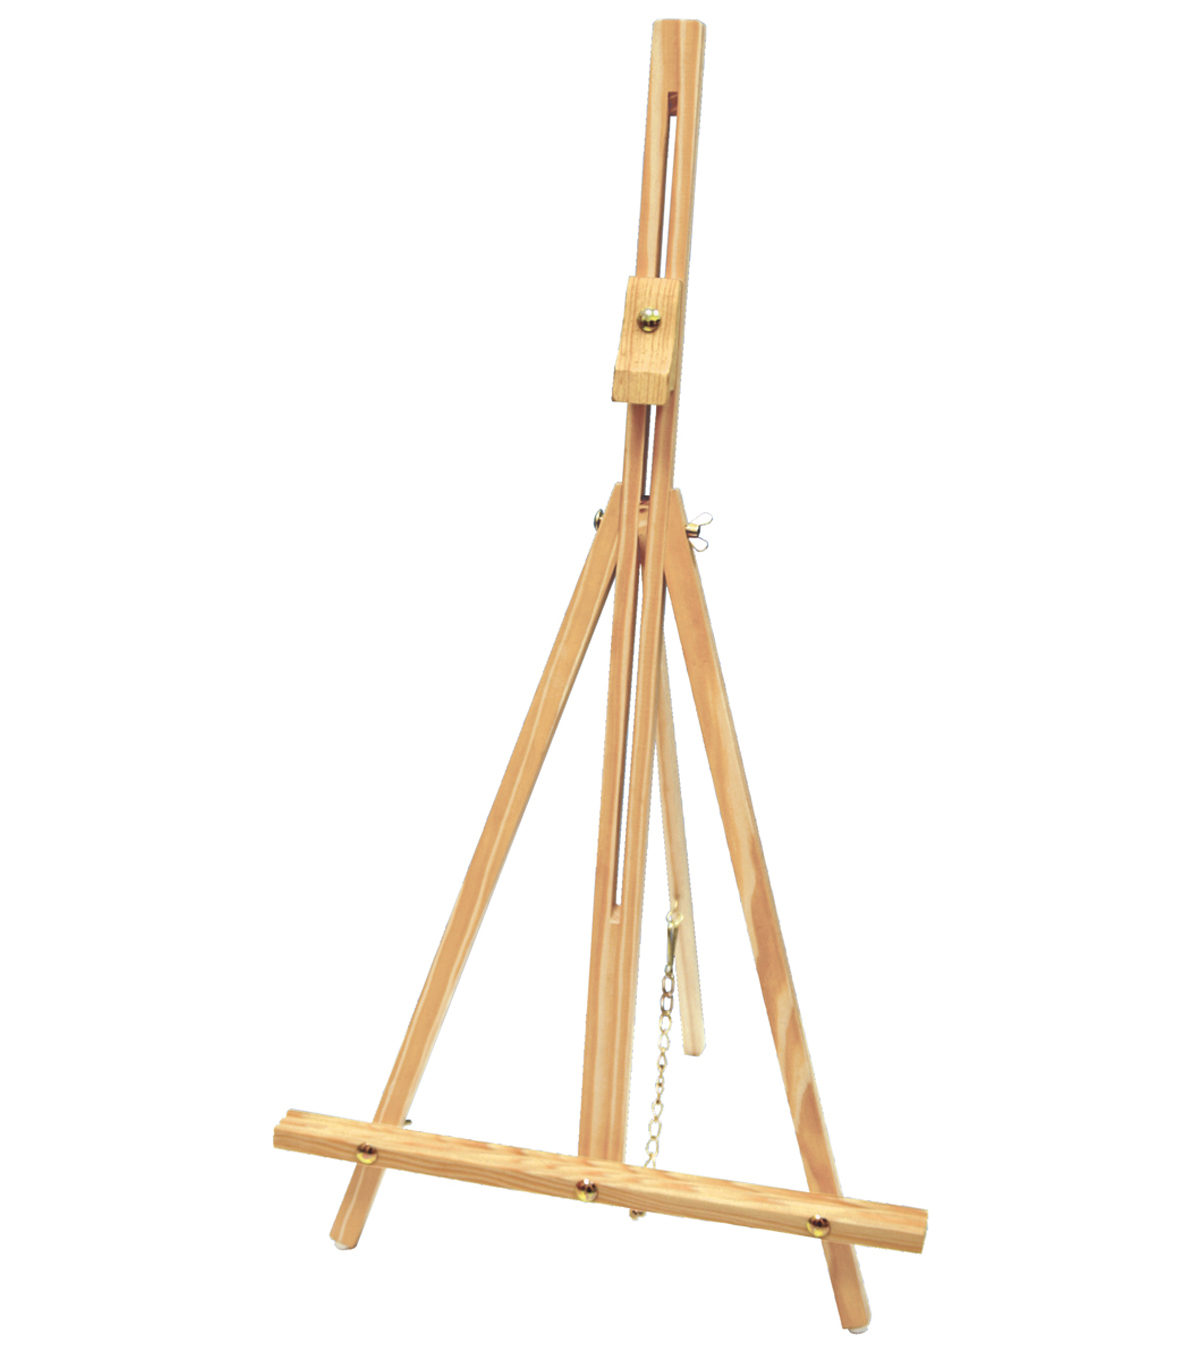 "Simply Art Natural Wood Table Easel-18"" High"